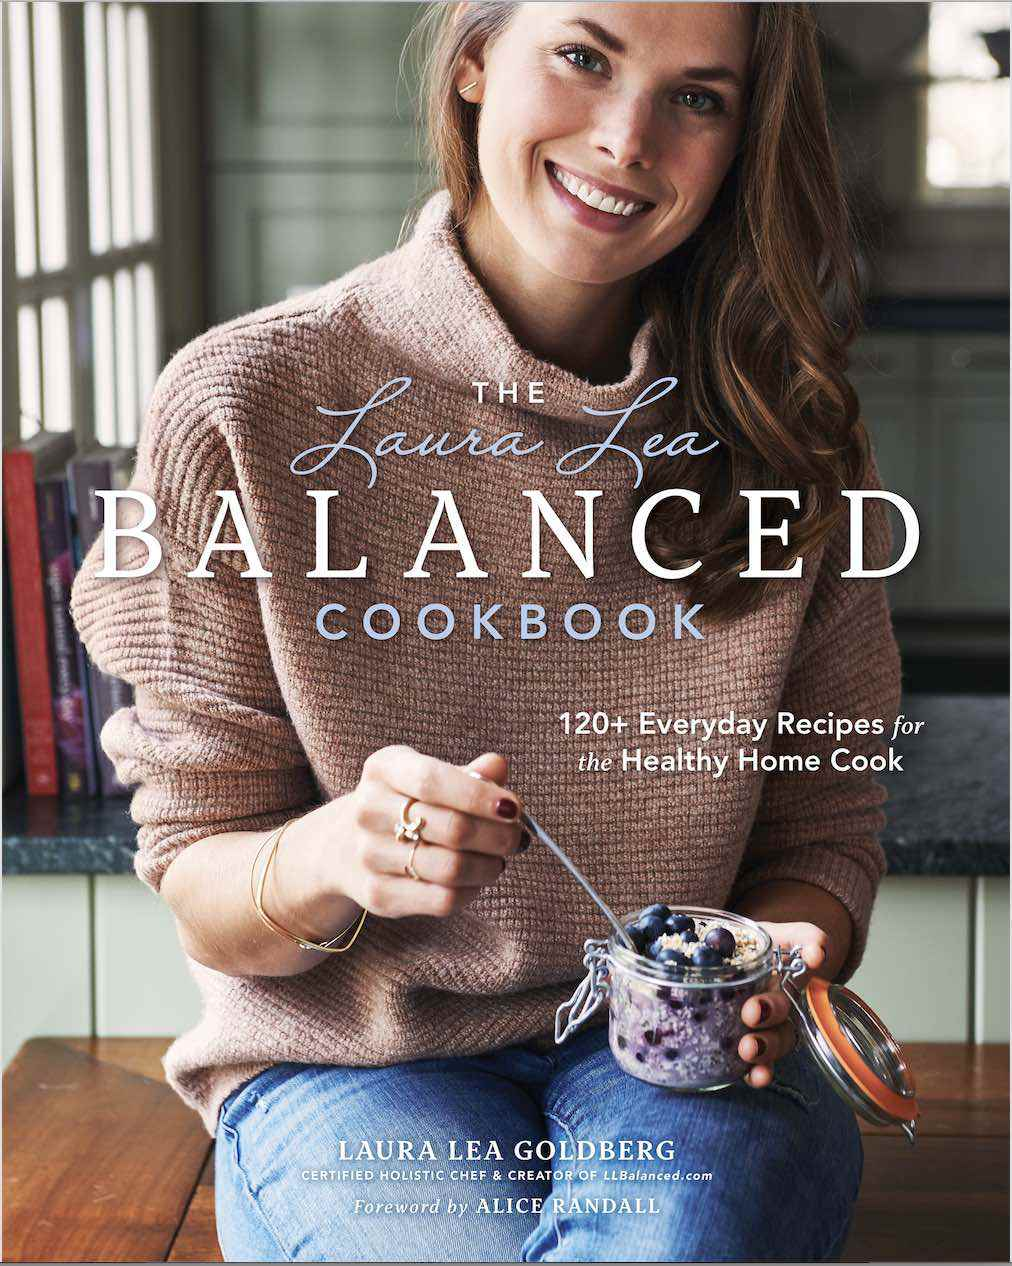 The Laura Lea Balanced Cookbook